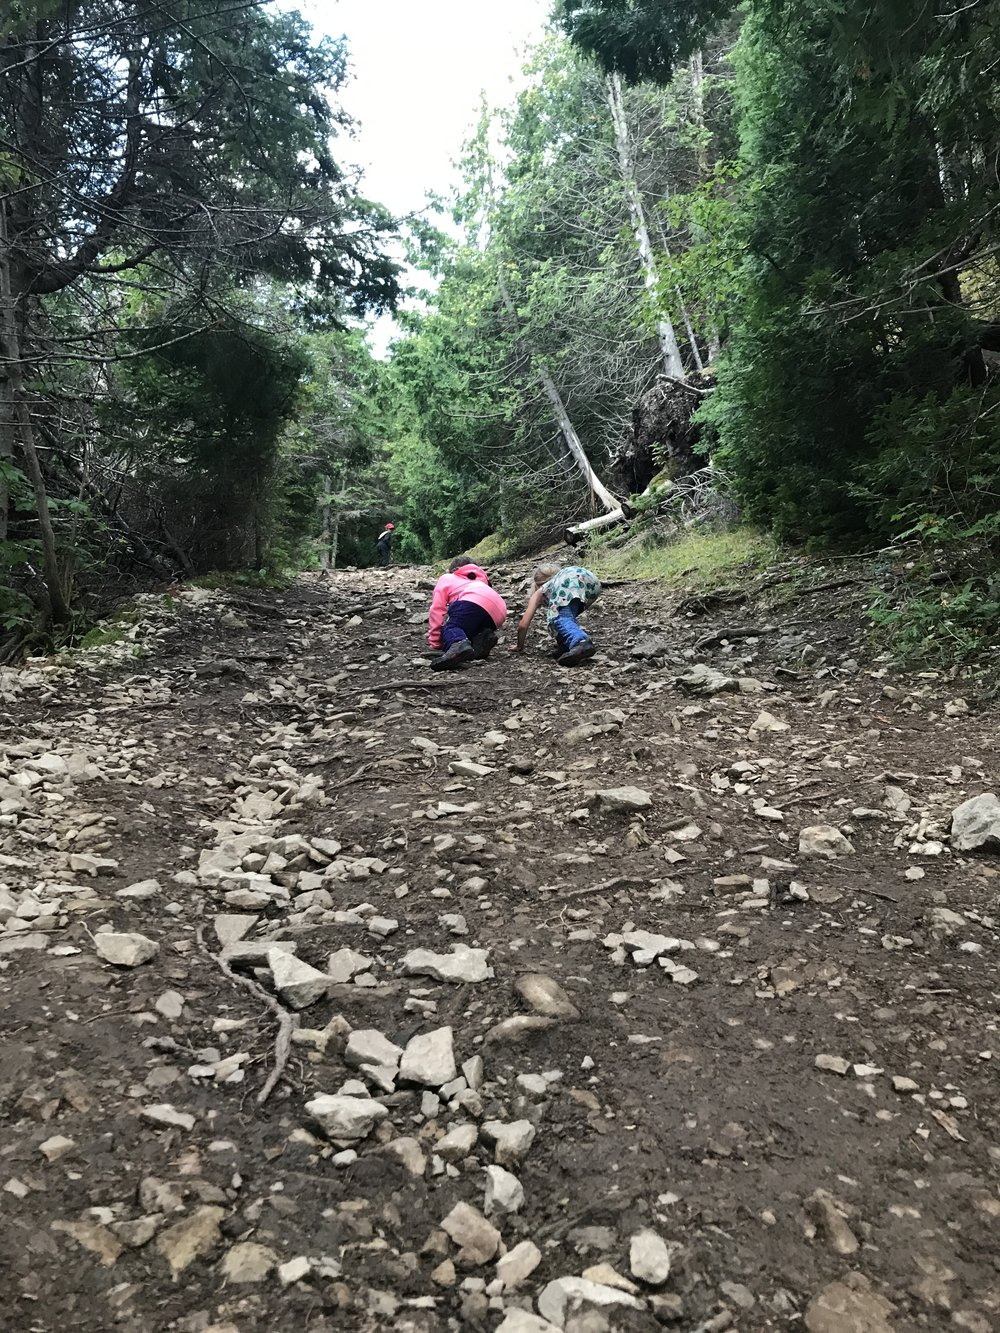 The uphill trail to the Observation deck. Sophie and Ellie dramatizing the climb.